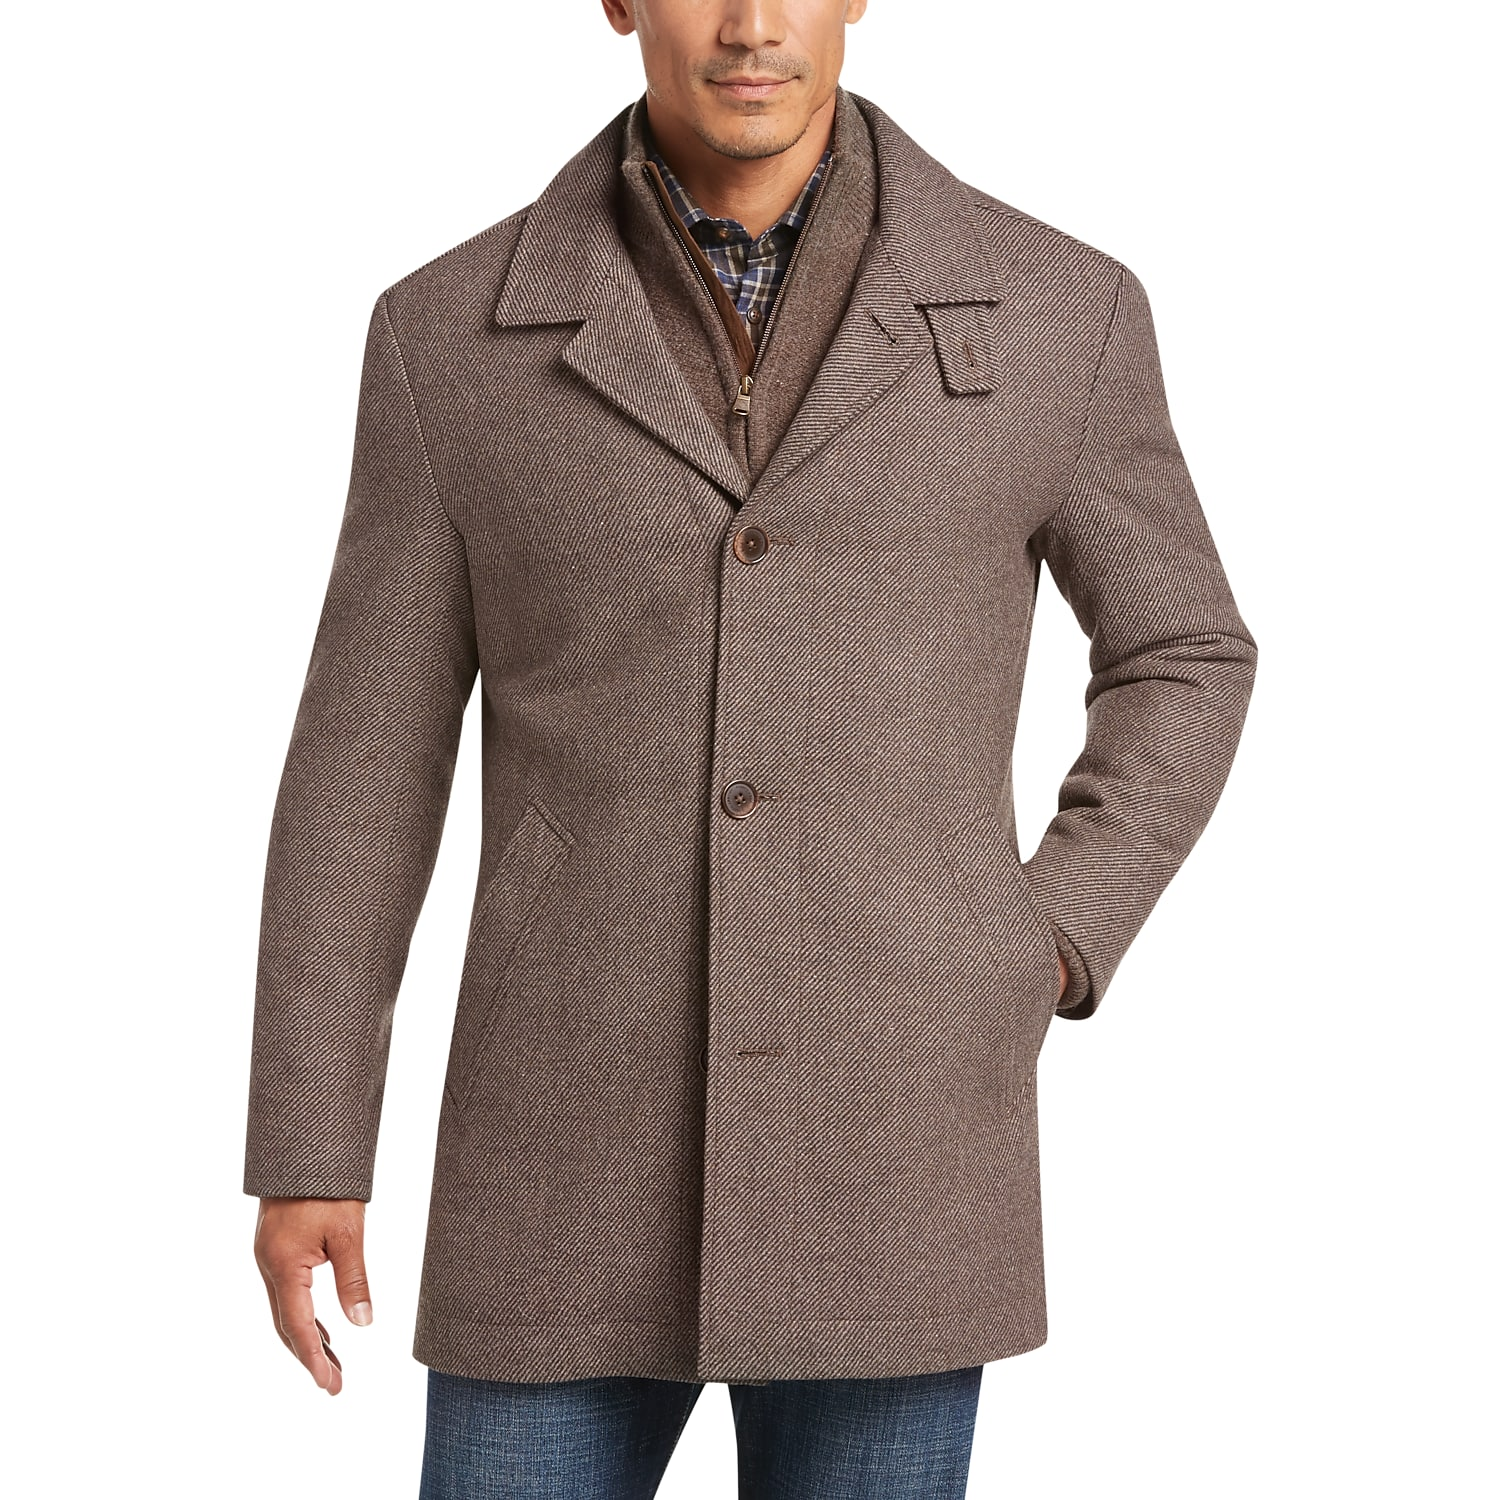 a8d20d1ca Jackets, Outerwear & Coats for Men | Men's Wearhouse